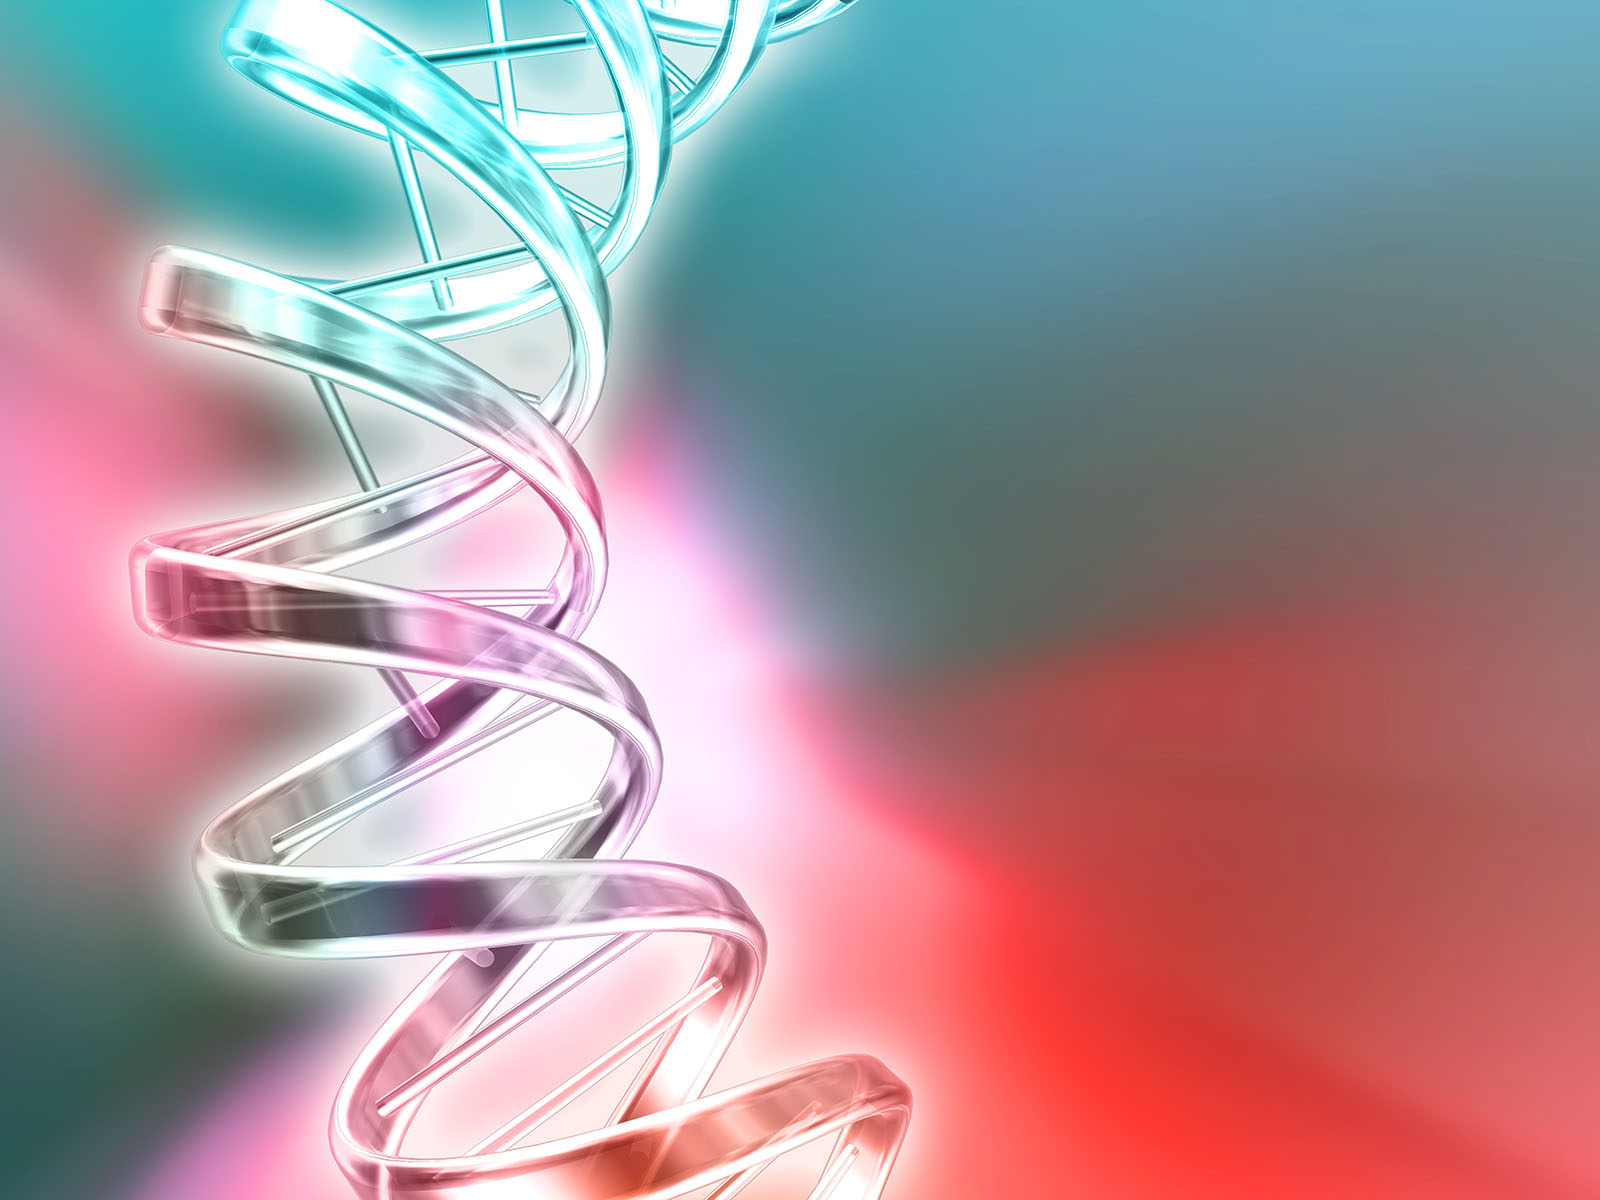 Does the Evolutionary Paradigm Stymie Scientific Advance?